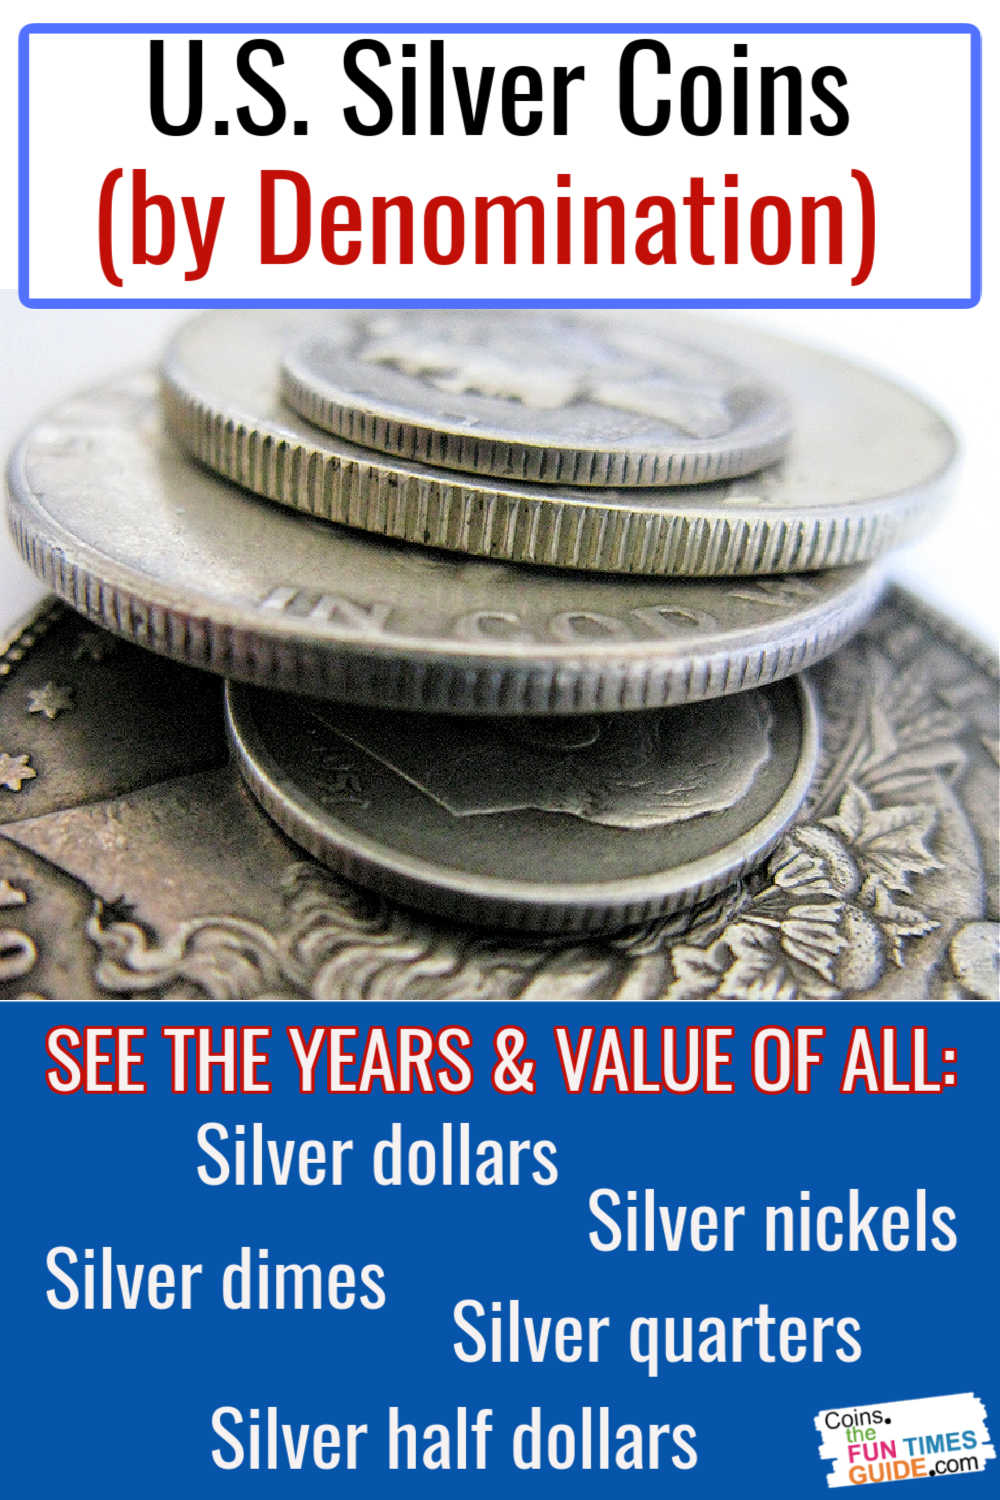 A List Of All U.S. Silver Coins By Denomination + The Most Valuable Silver Coins (And How Much They\'re Worth)